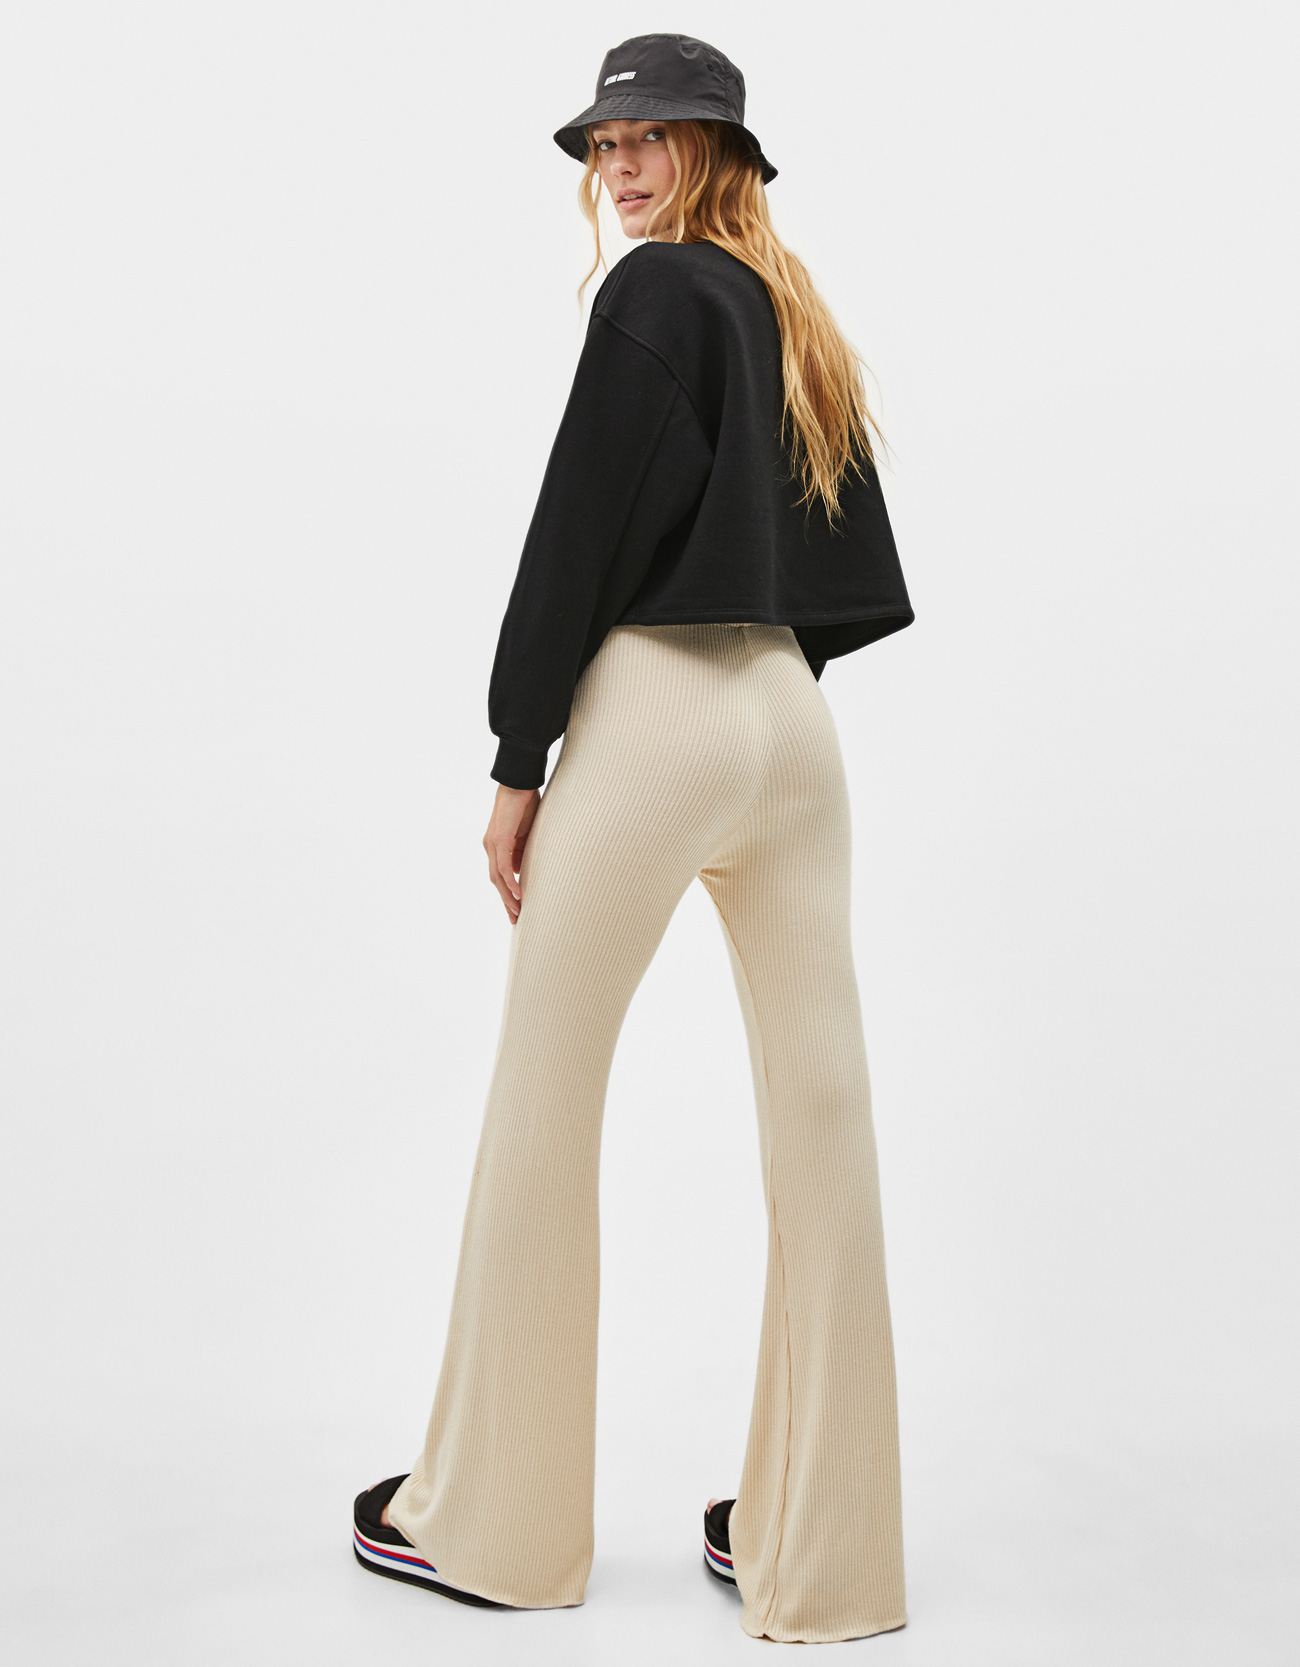 Missguided tall exclusive nude lace up flare trousers in natural